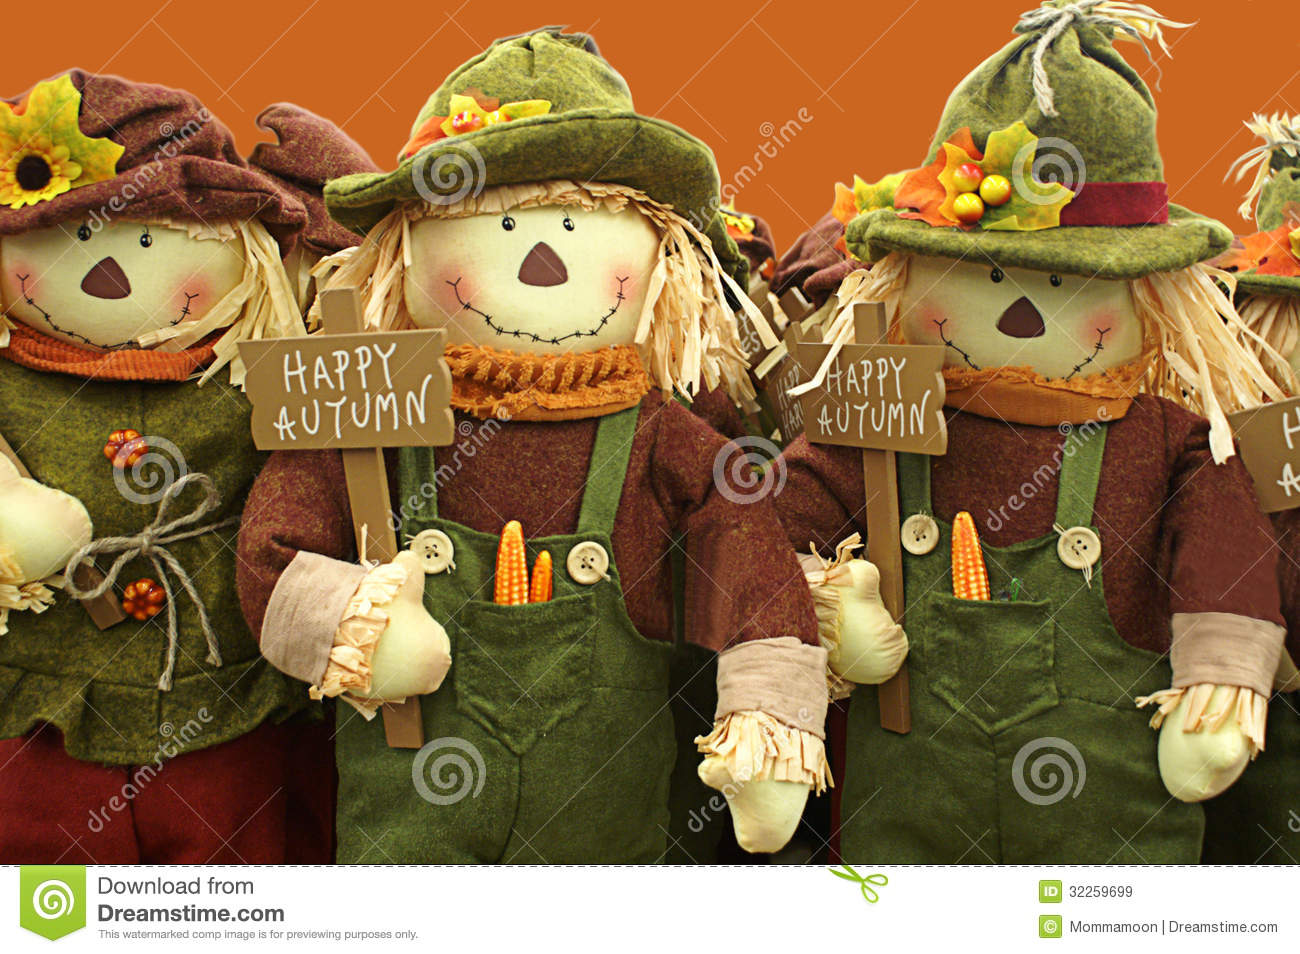 Cartoon Fall Wallpaper Happy Autumn Is Wished By Row Of Scarecrows Stock Image